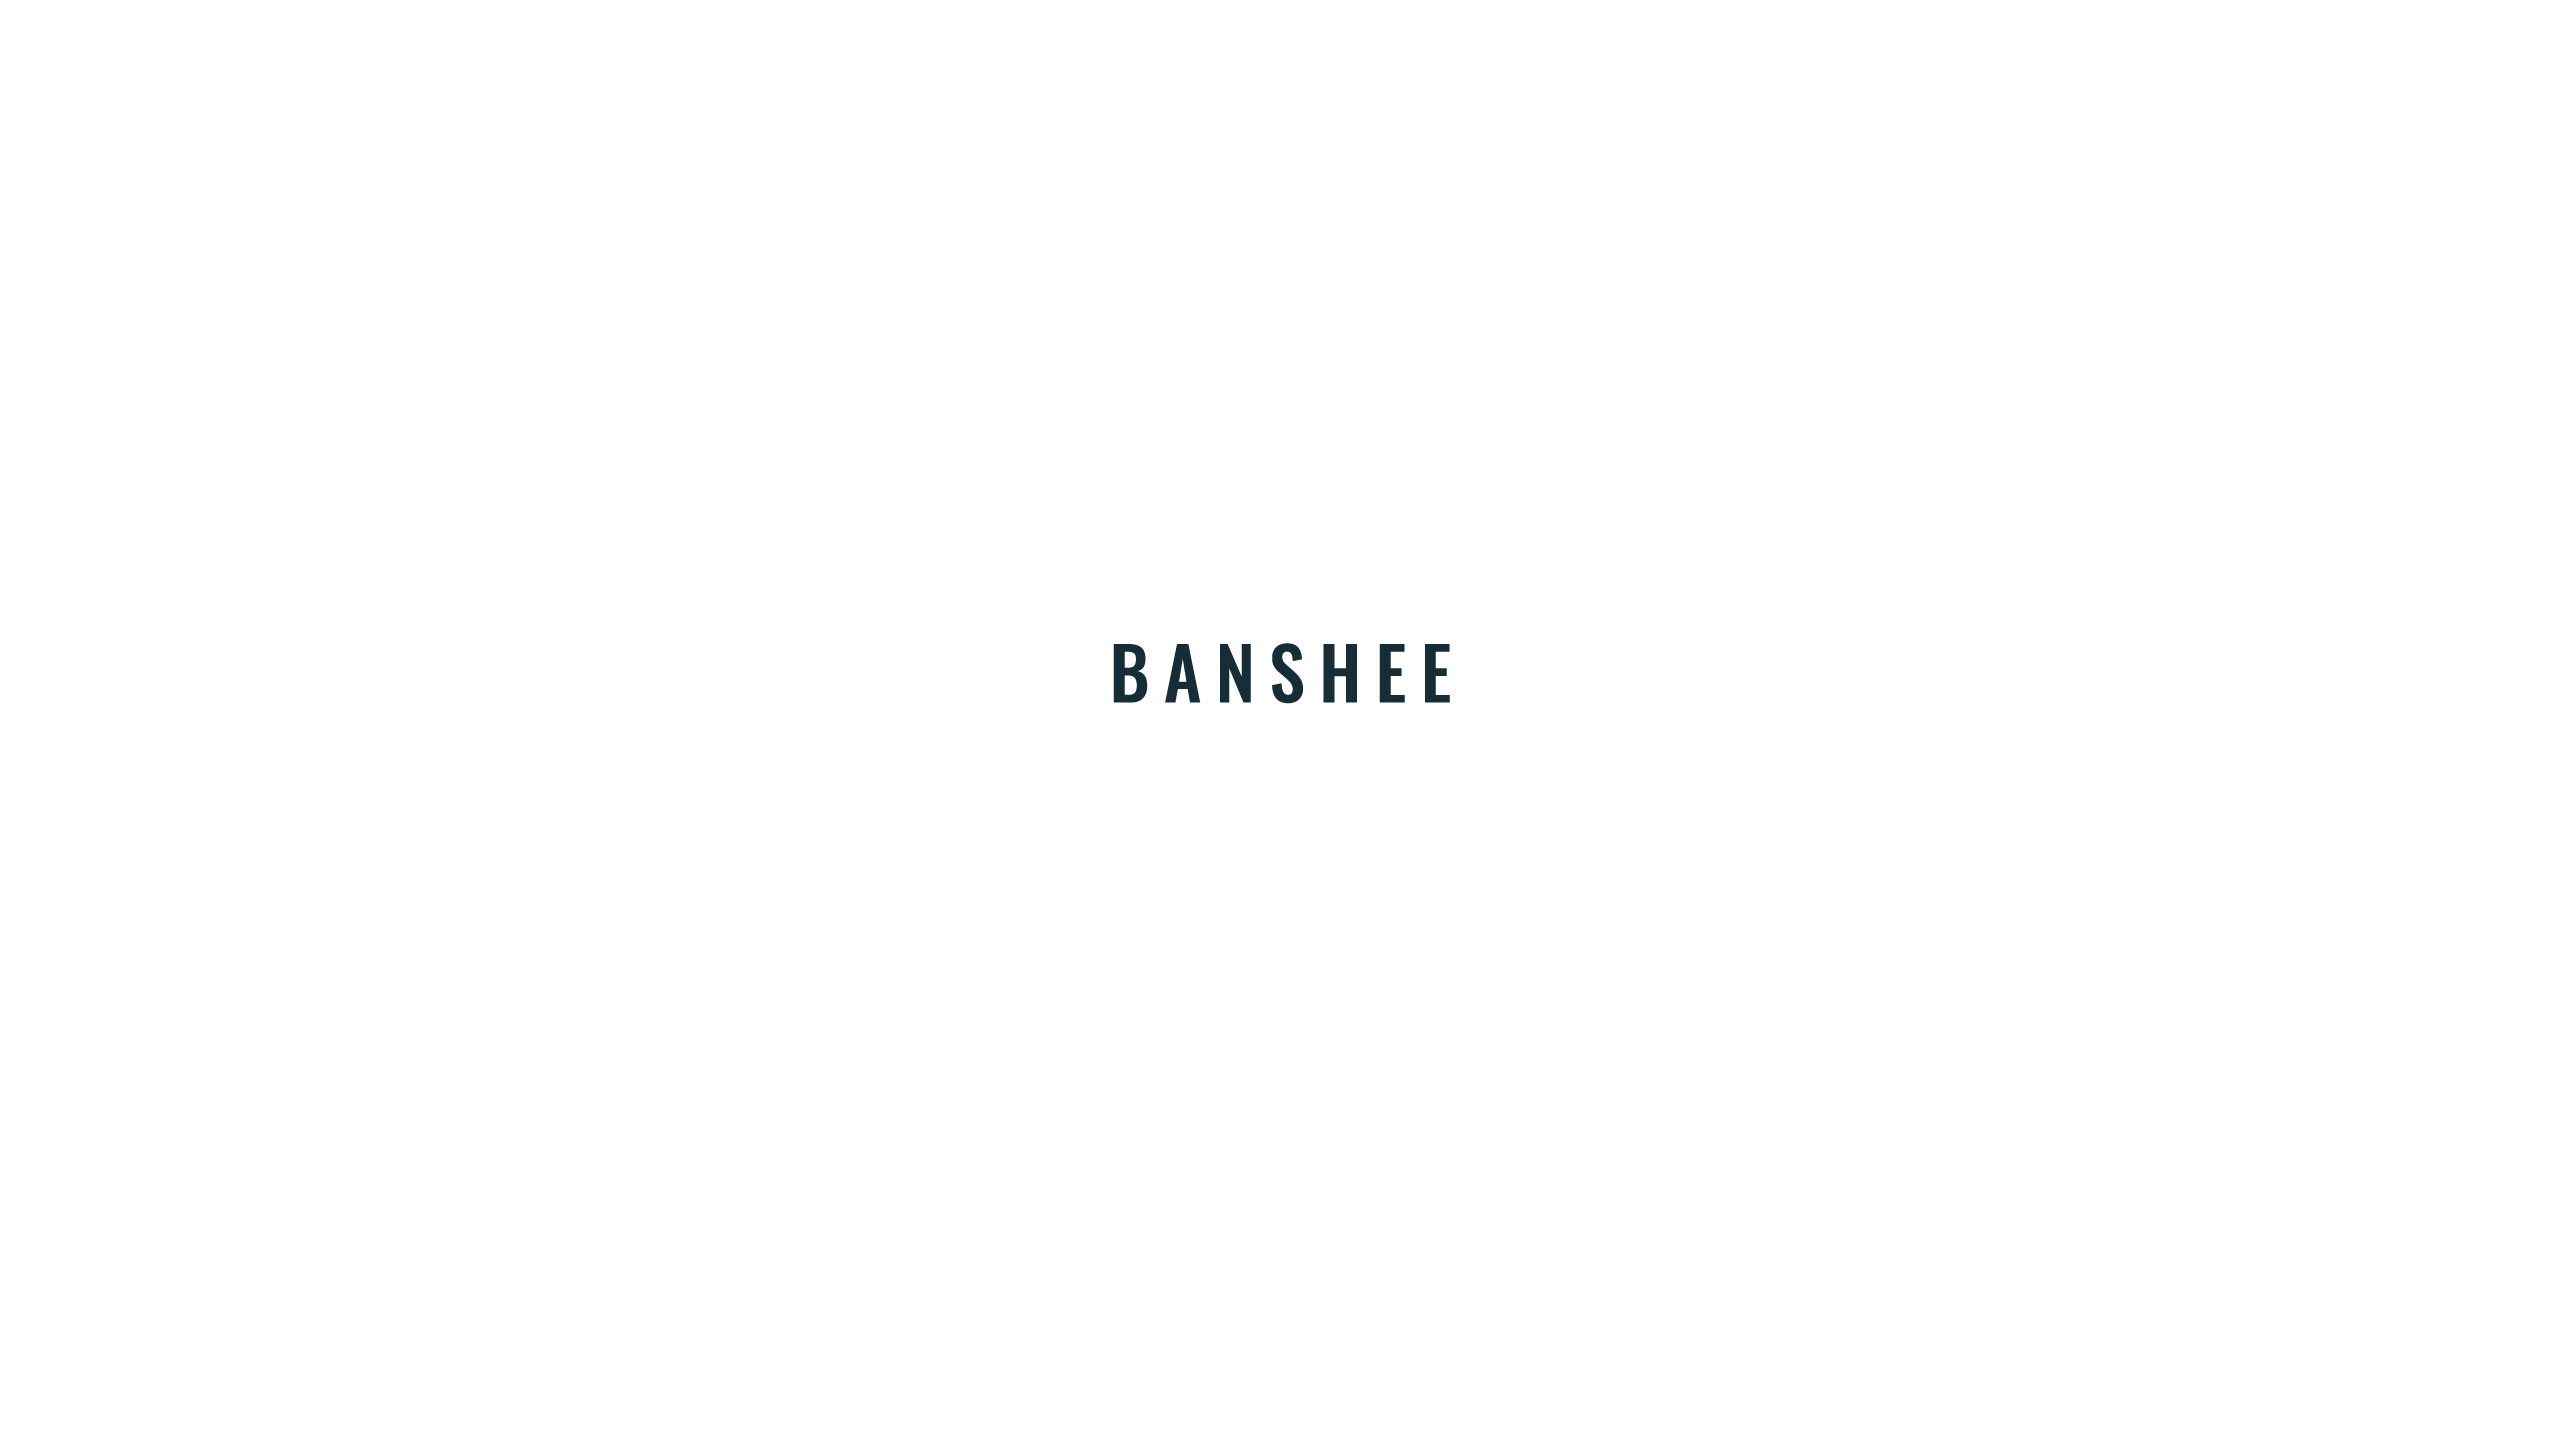 1a_Text_banshee